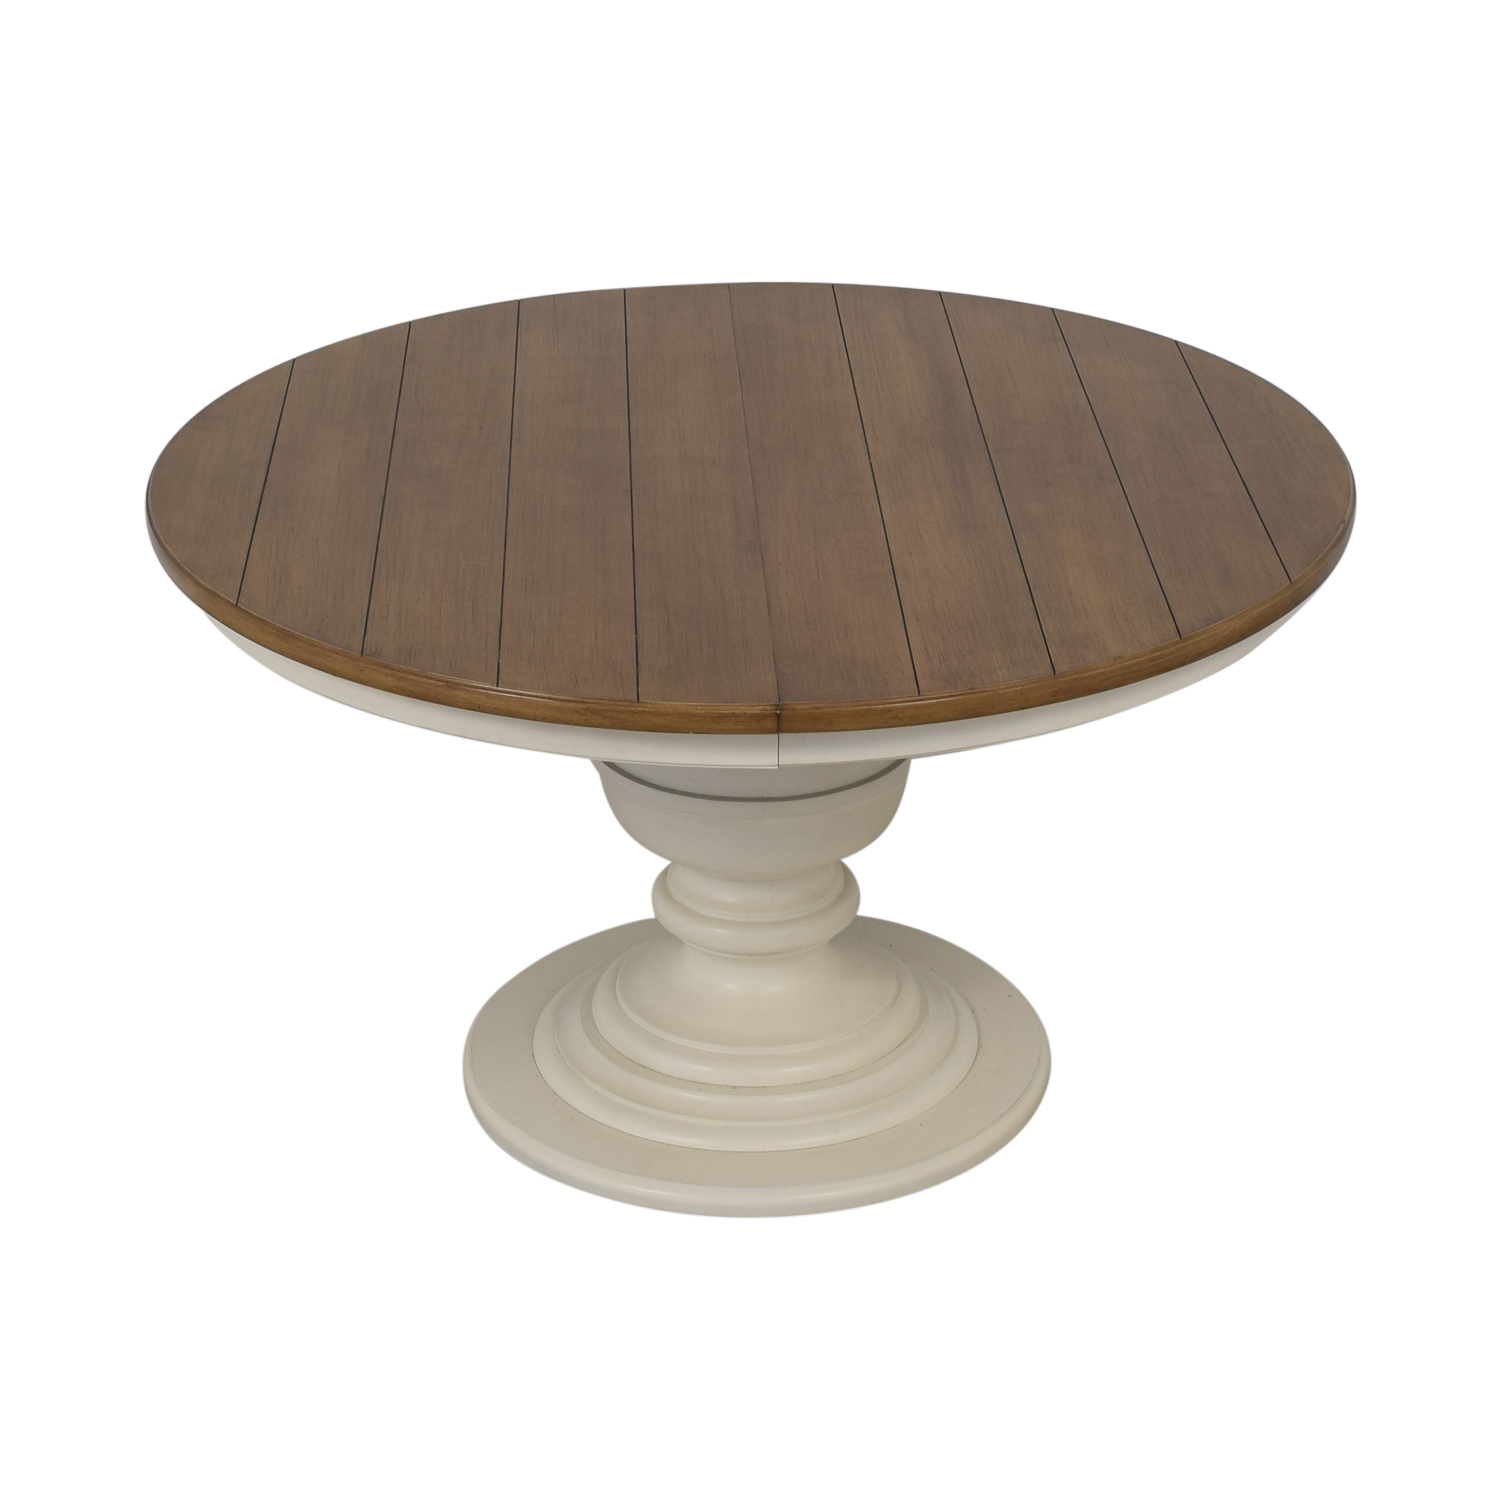 Macy's Macy's Sag Harbor Expandable Round Dining Pedestal Table dimensions